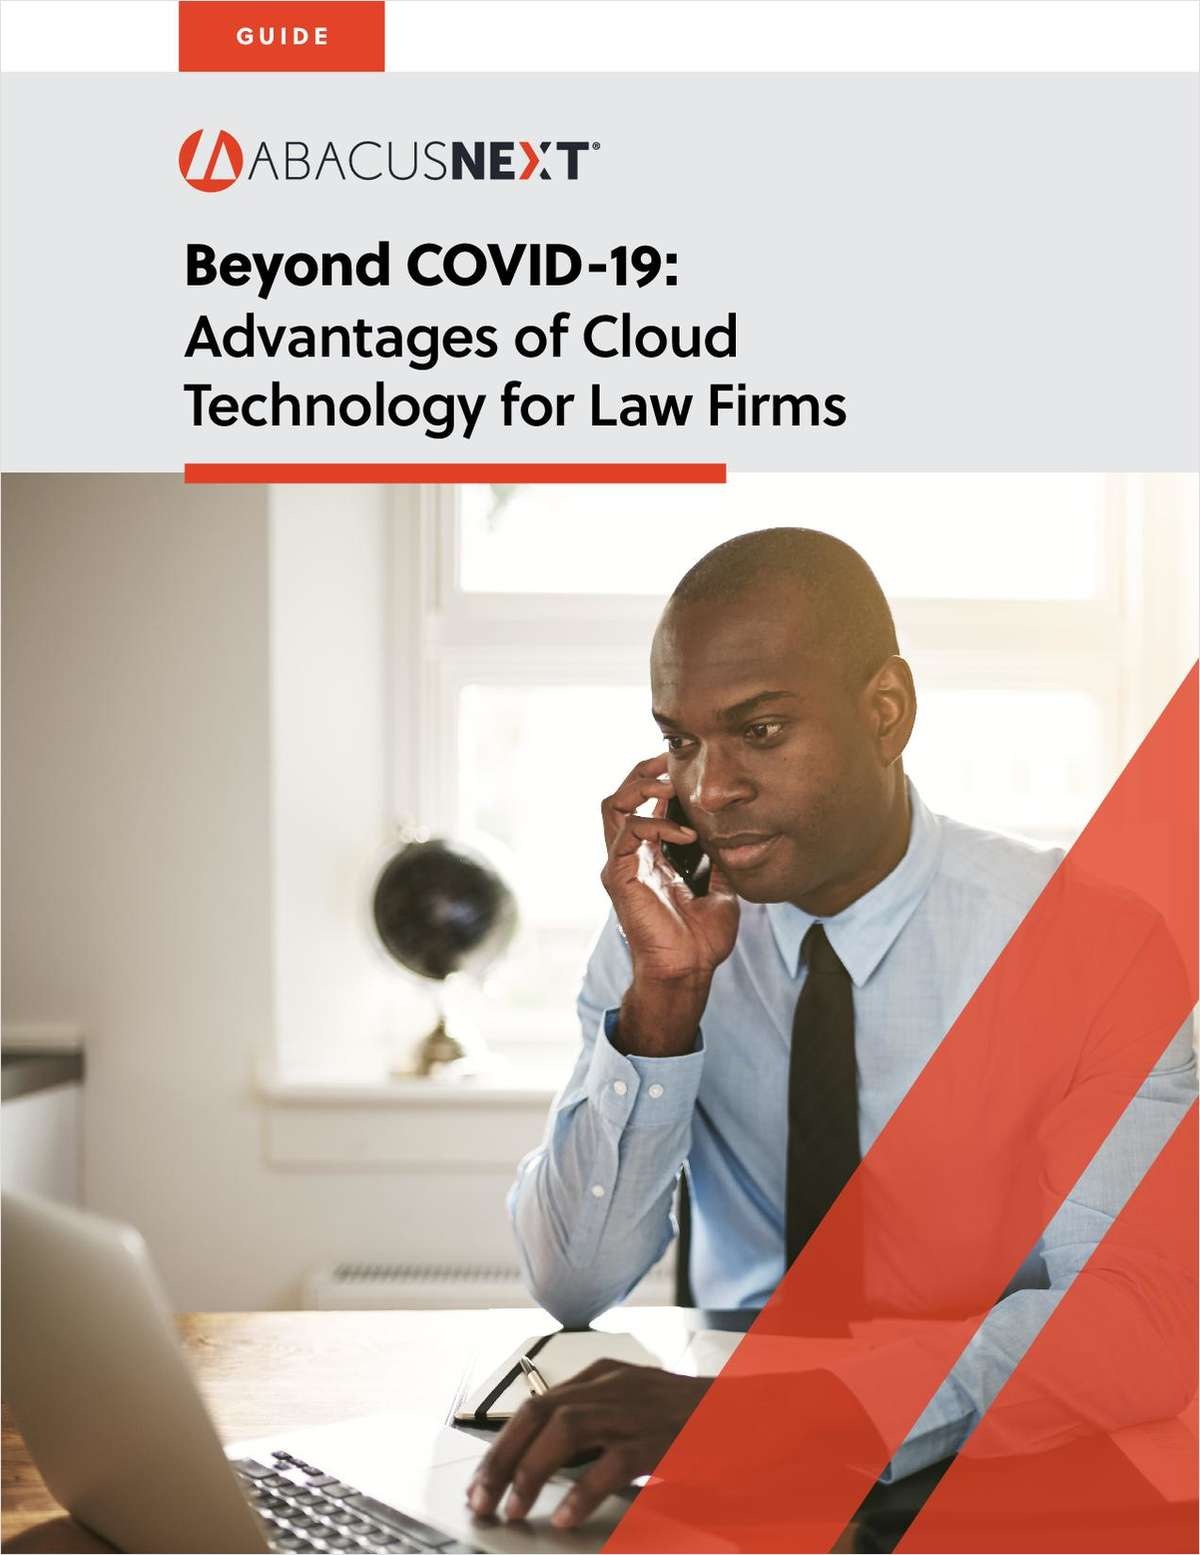 Beyond COVID-19: Advantages of Cloud Technology for Law Firms